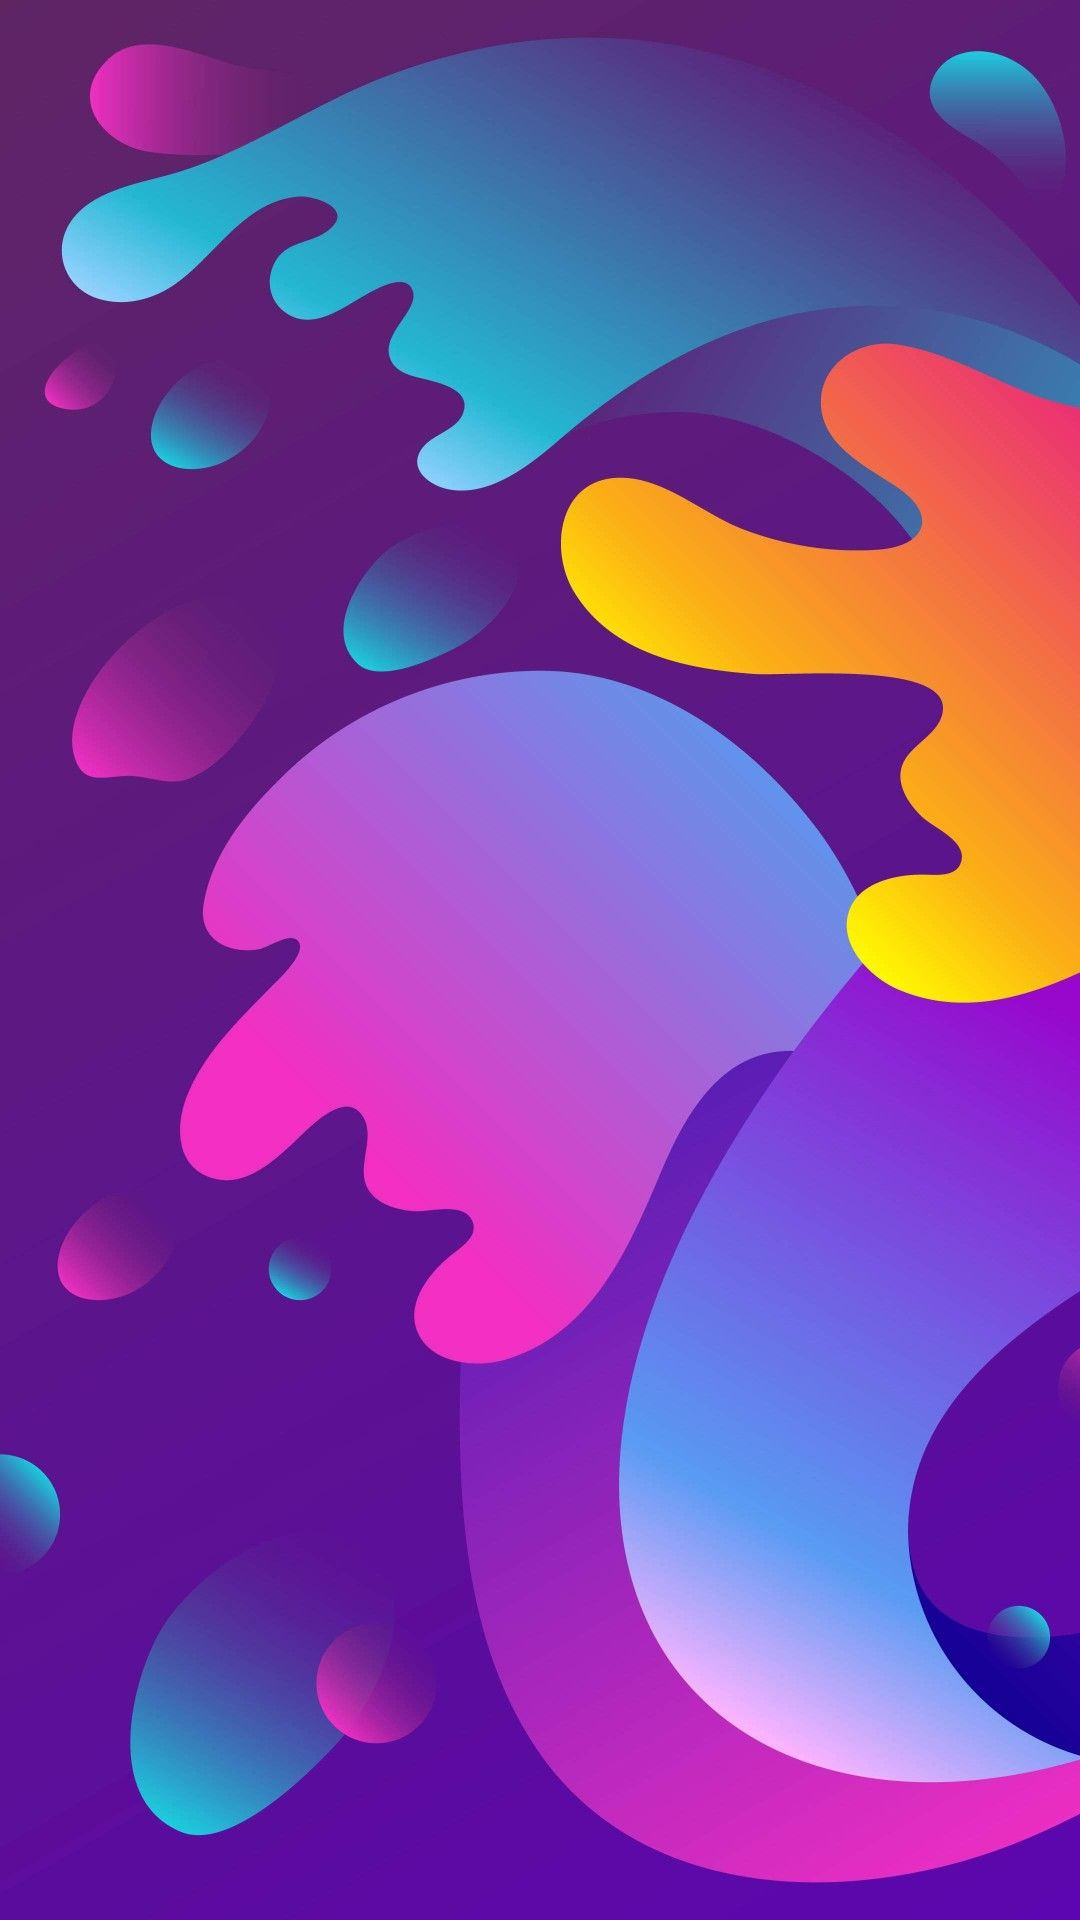 Colorful Swirl Abstract Wallpaper Abstract Iphone Wallpaper Abstract Wallpaper Android Wallpaper